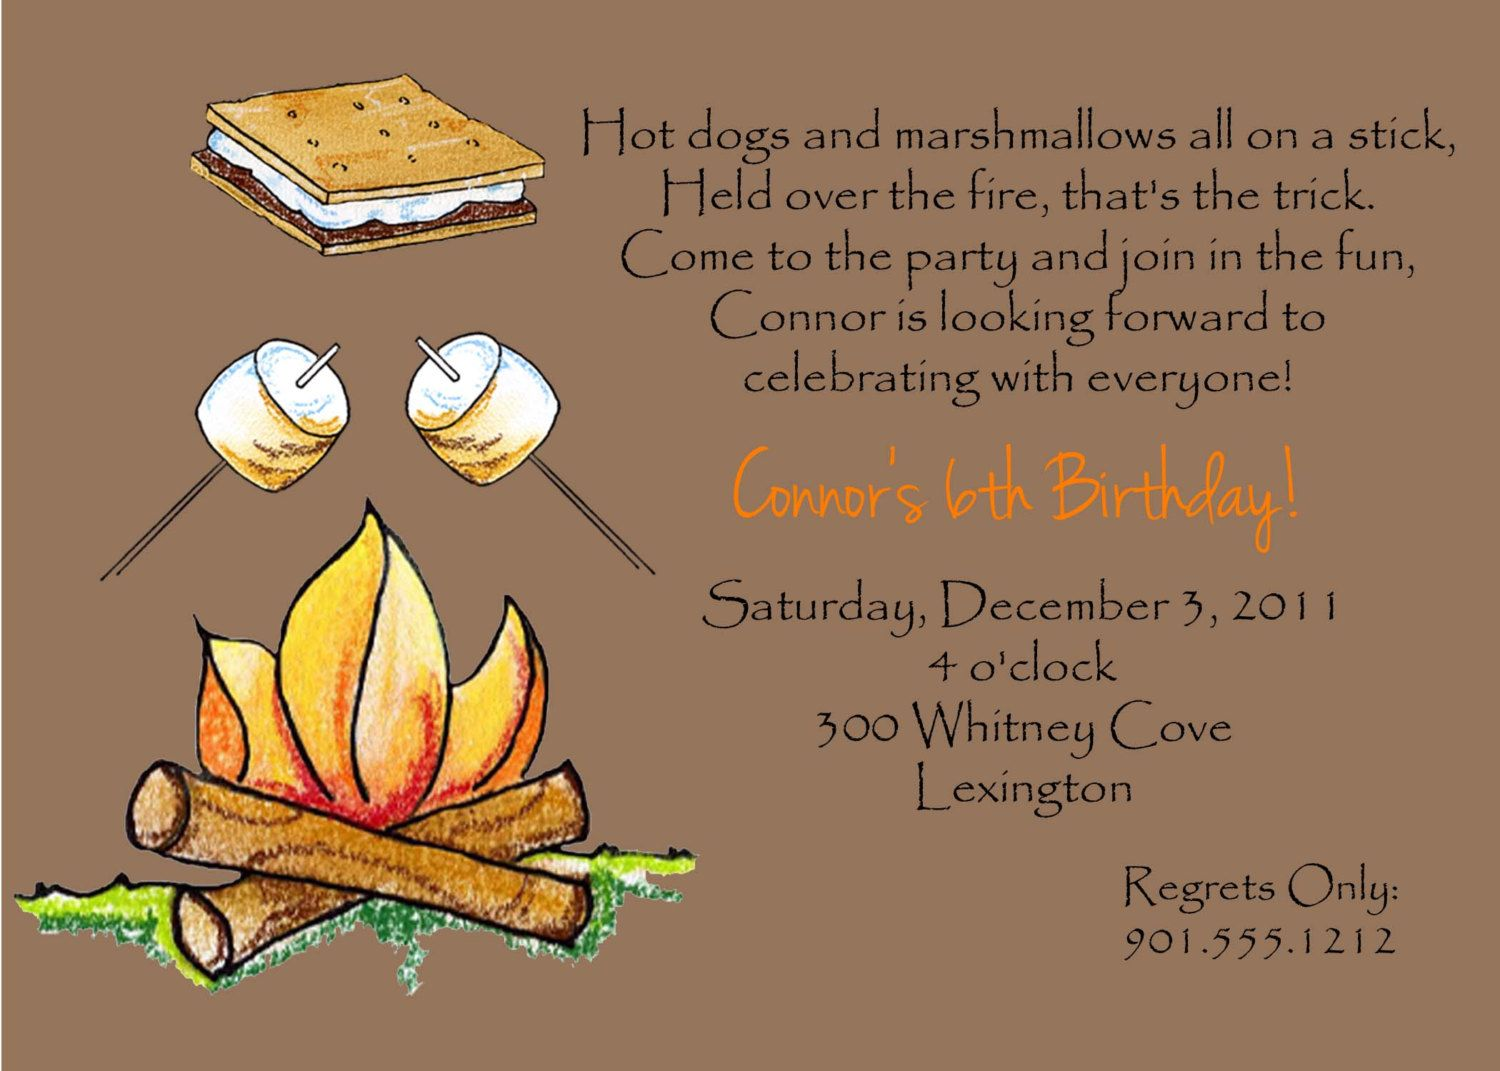 Campfire smore marshmallow birthday party invitations printable campfire smore marshmallow birthday party invitations printable digital file 1200 via etsy monicamarmolfo Image collections